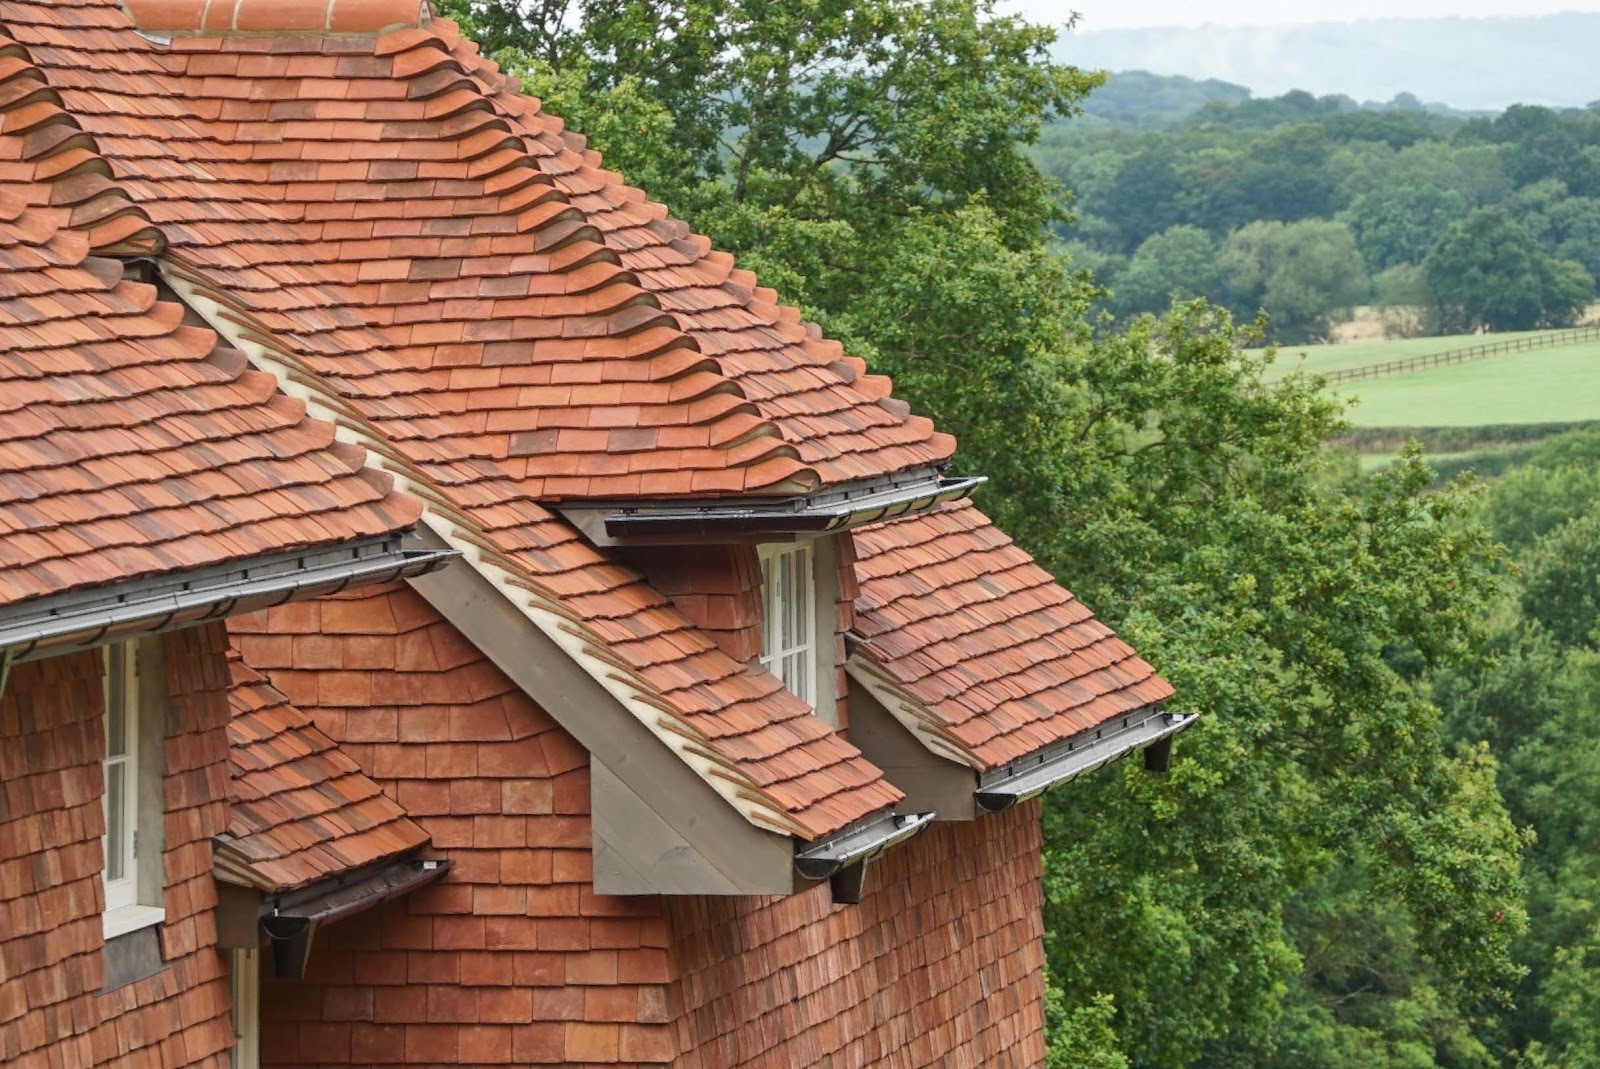 Brookhurst Managed to Create Around 50,000 Plain Clay Roofing Tiles